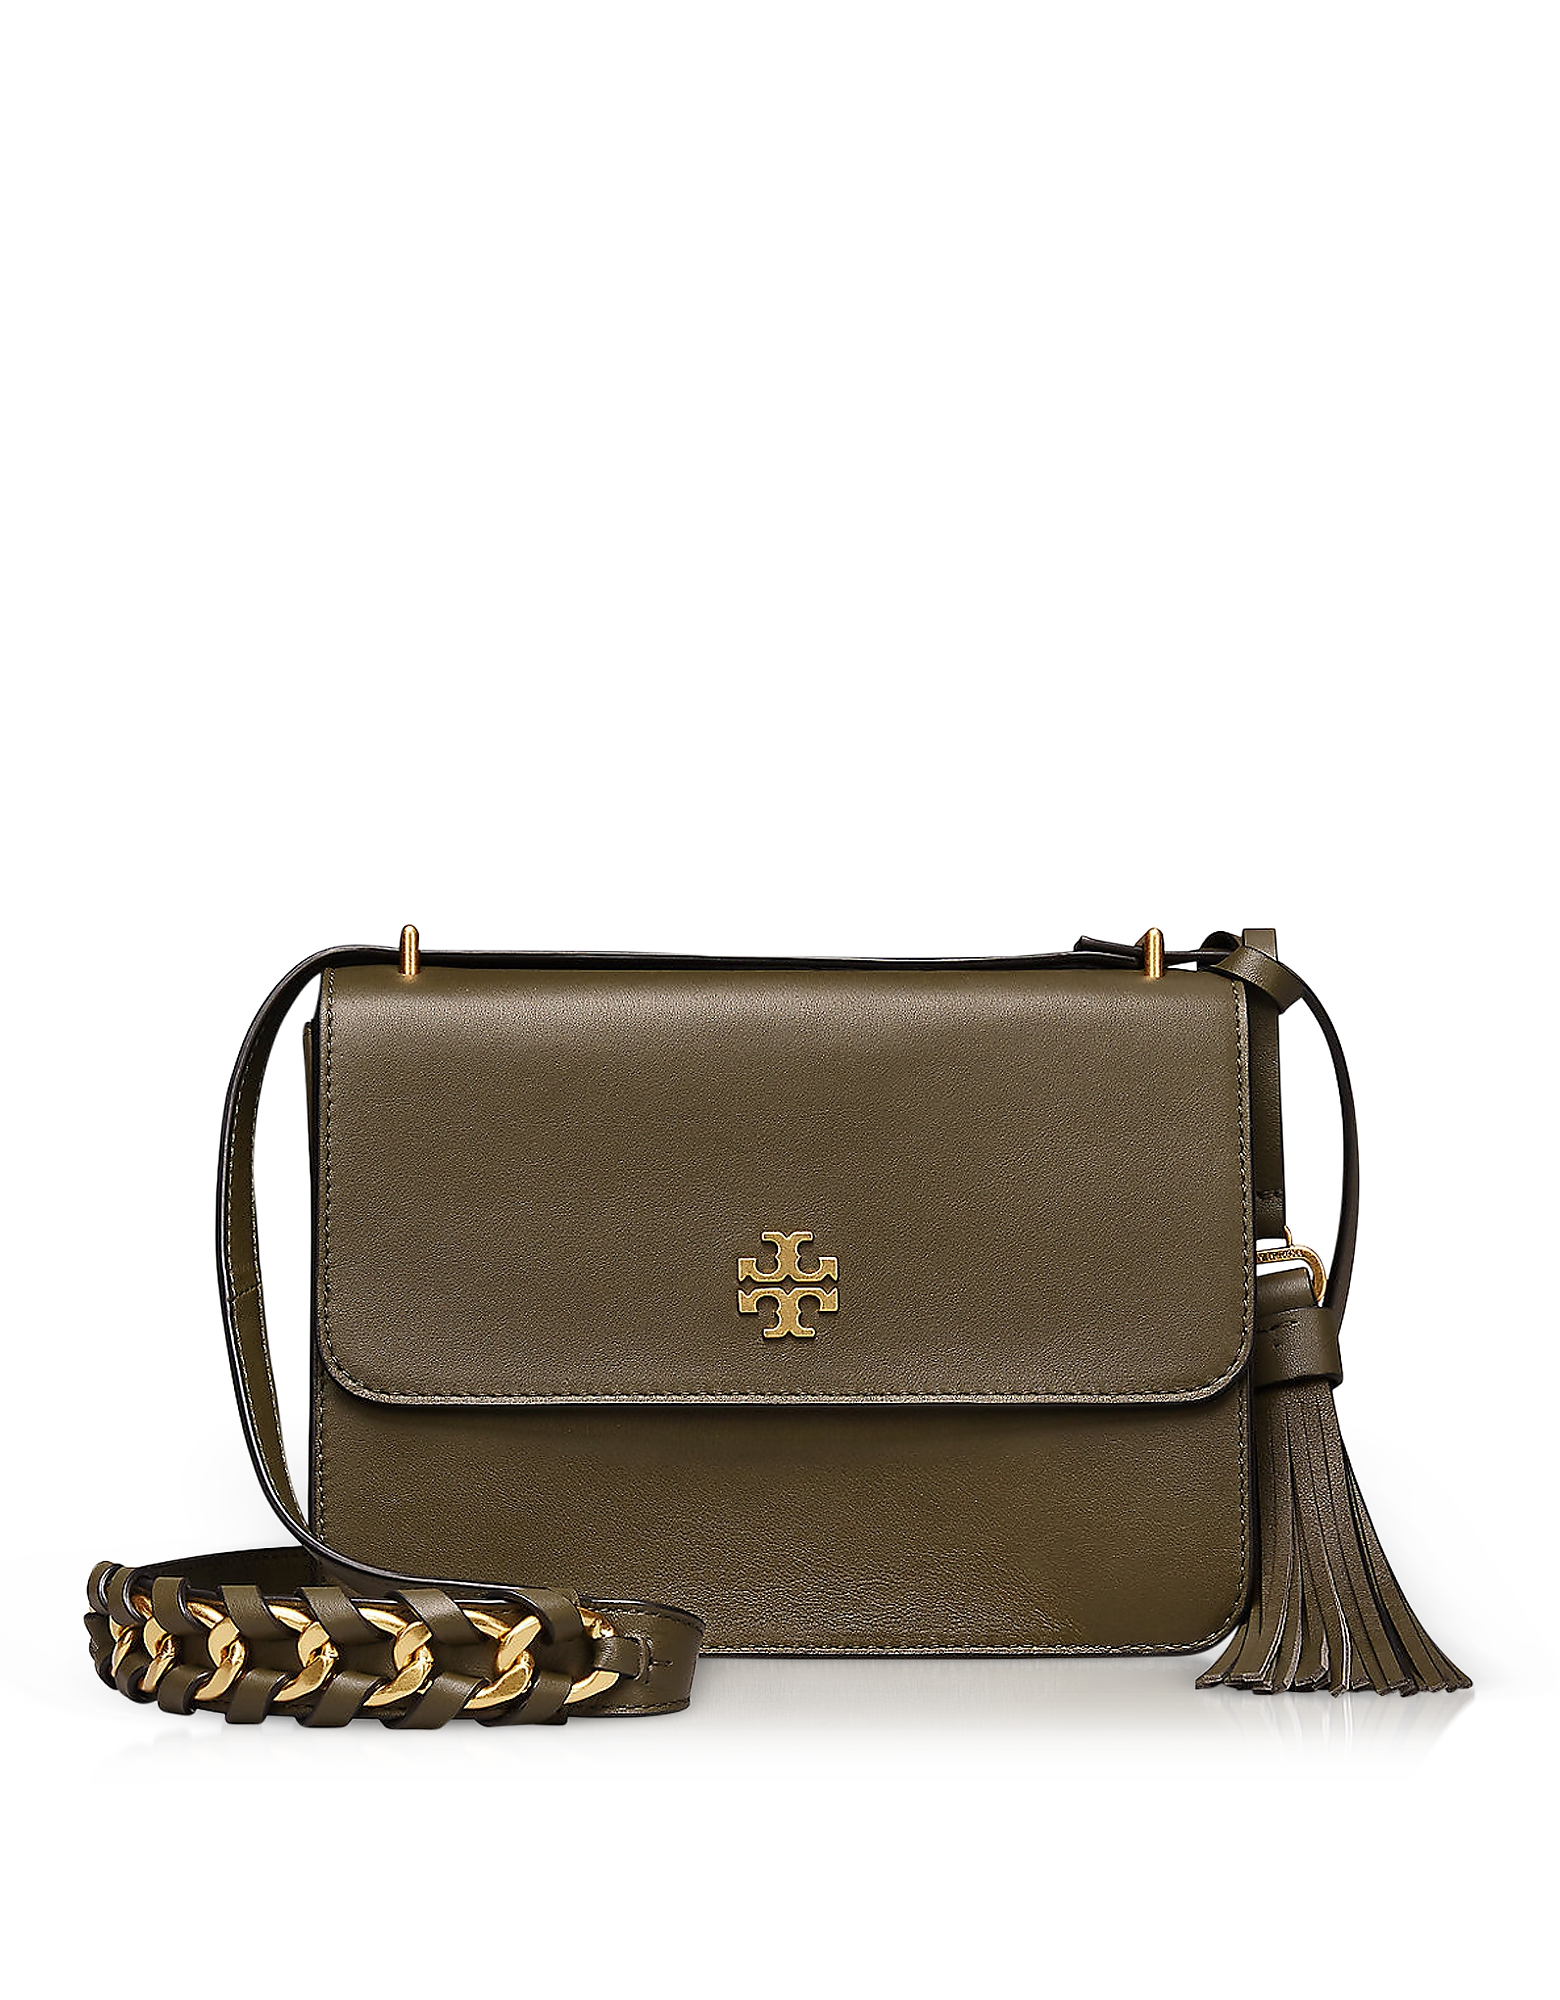 Buy Tory Burch Shoes Online